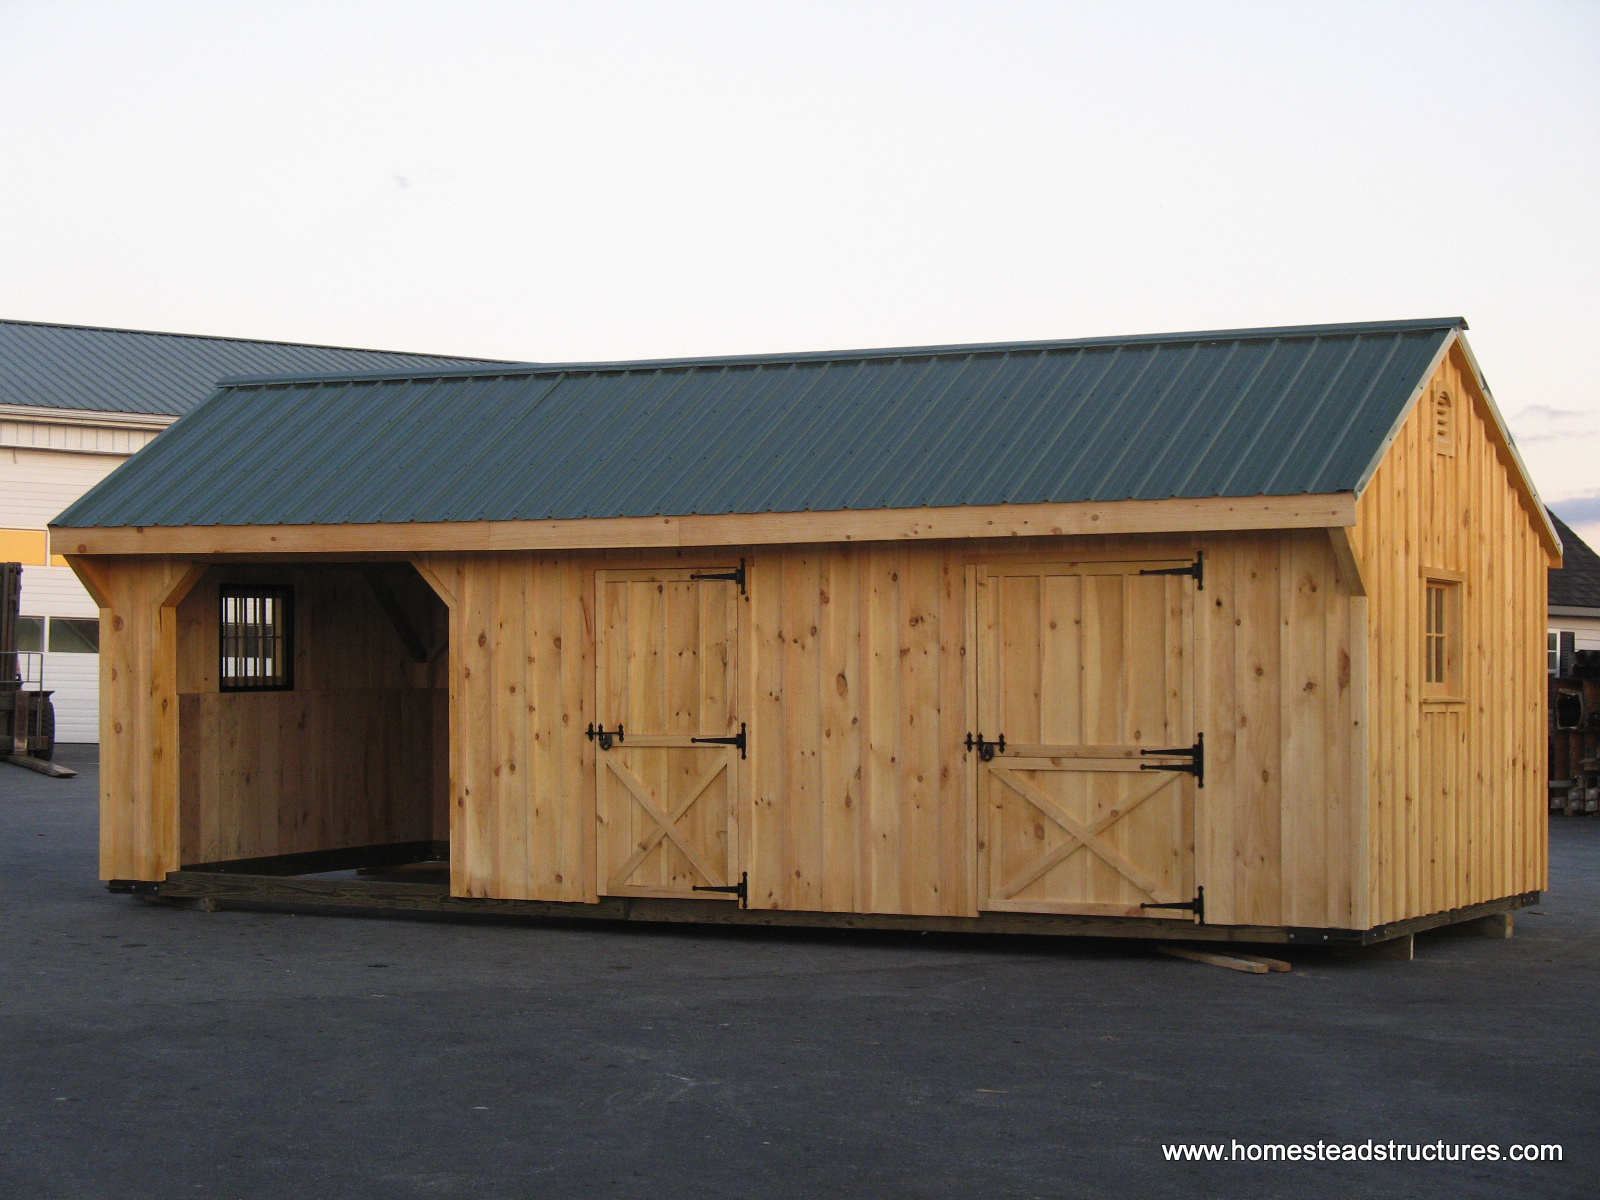 sheds horse w siding run room batten in structures tack amish board ft barns